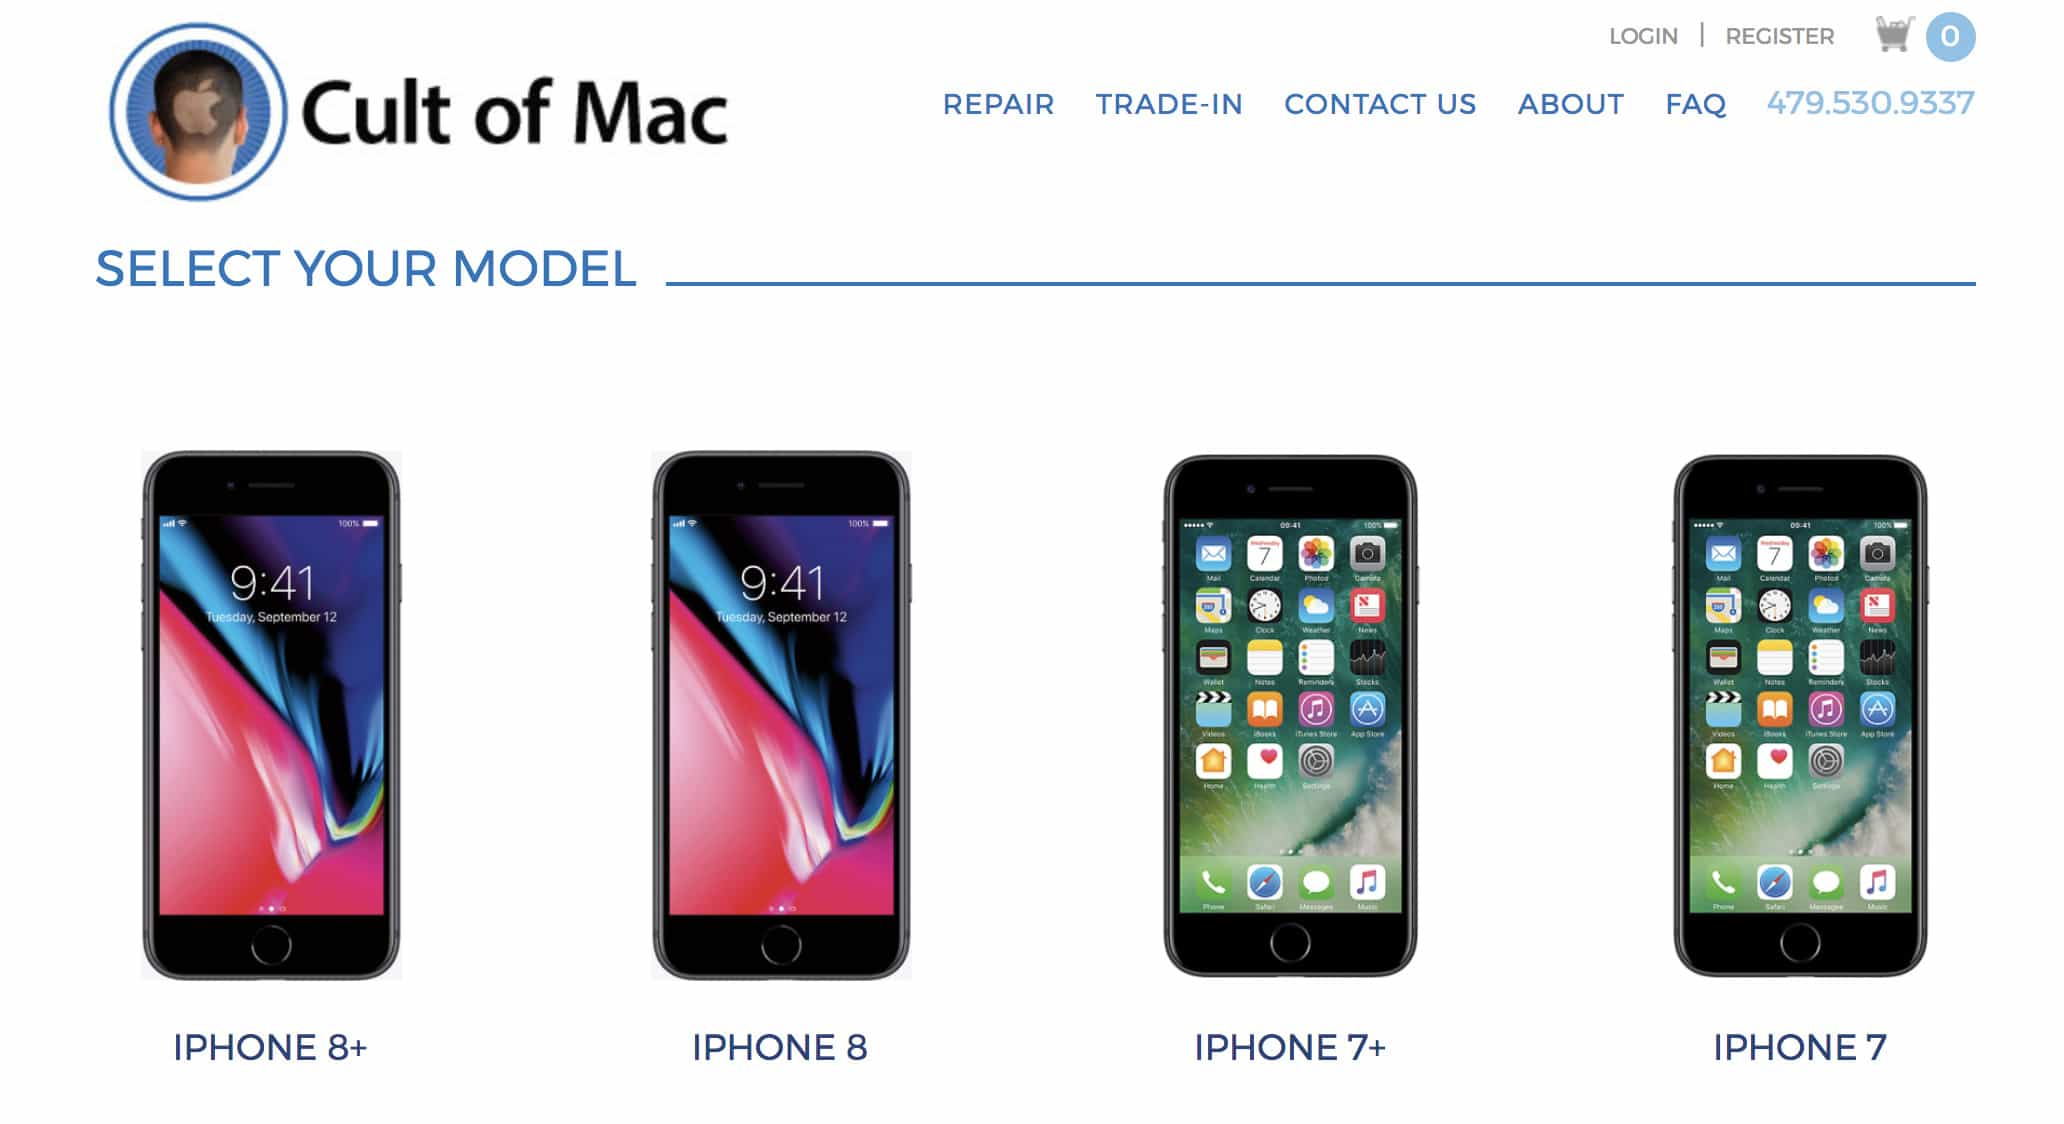 iPhone 8 trade-In from Cult of Mac iPhone buyback service.